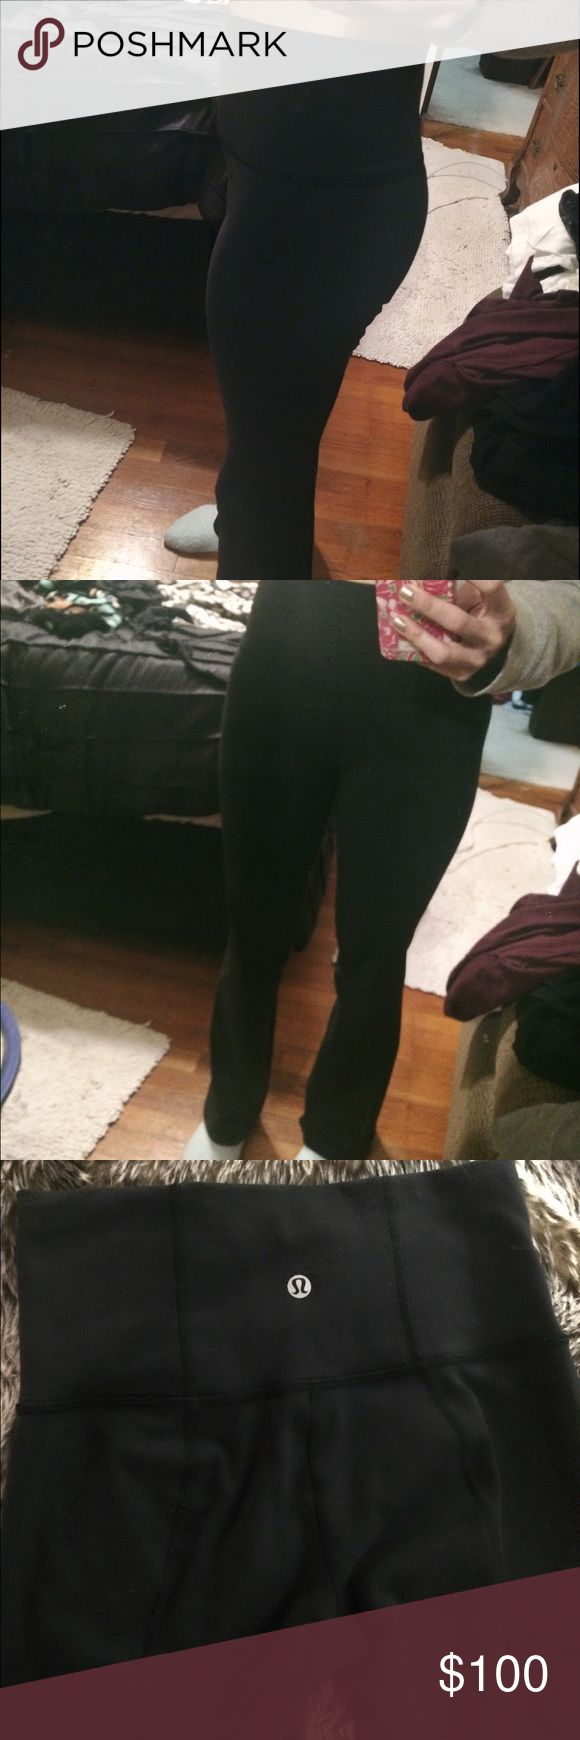 Lululemon yoga pants (size 2) Lululemon yoga pants worn only once. I'm a 14 year old girl and they fit me perfectly. lululemon athletica Pants Boot Cut & Flare